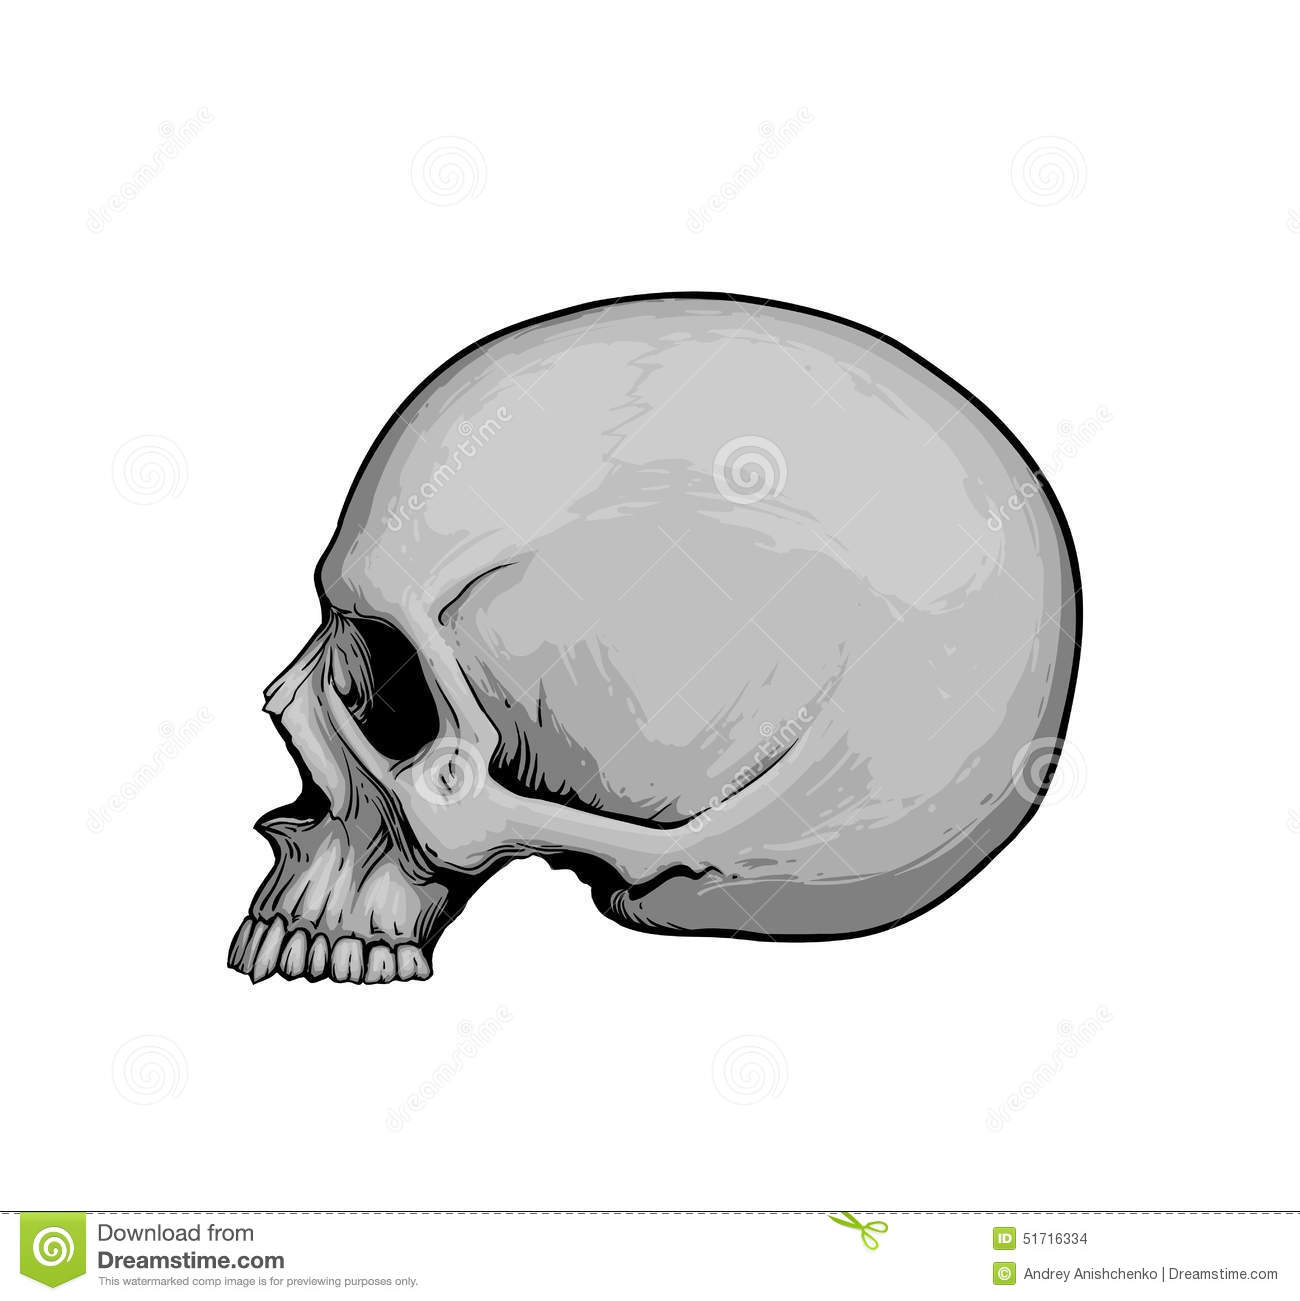 It is a graphic of Clever Skull Profile Drawing